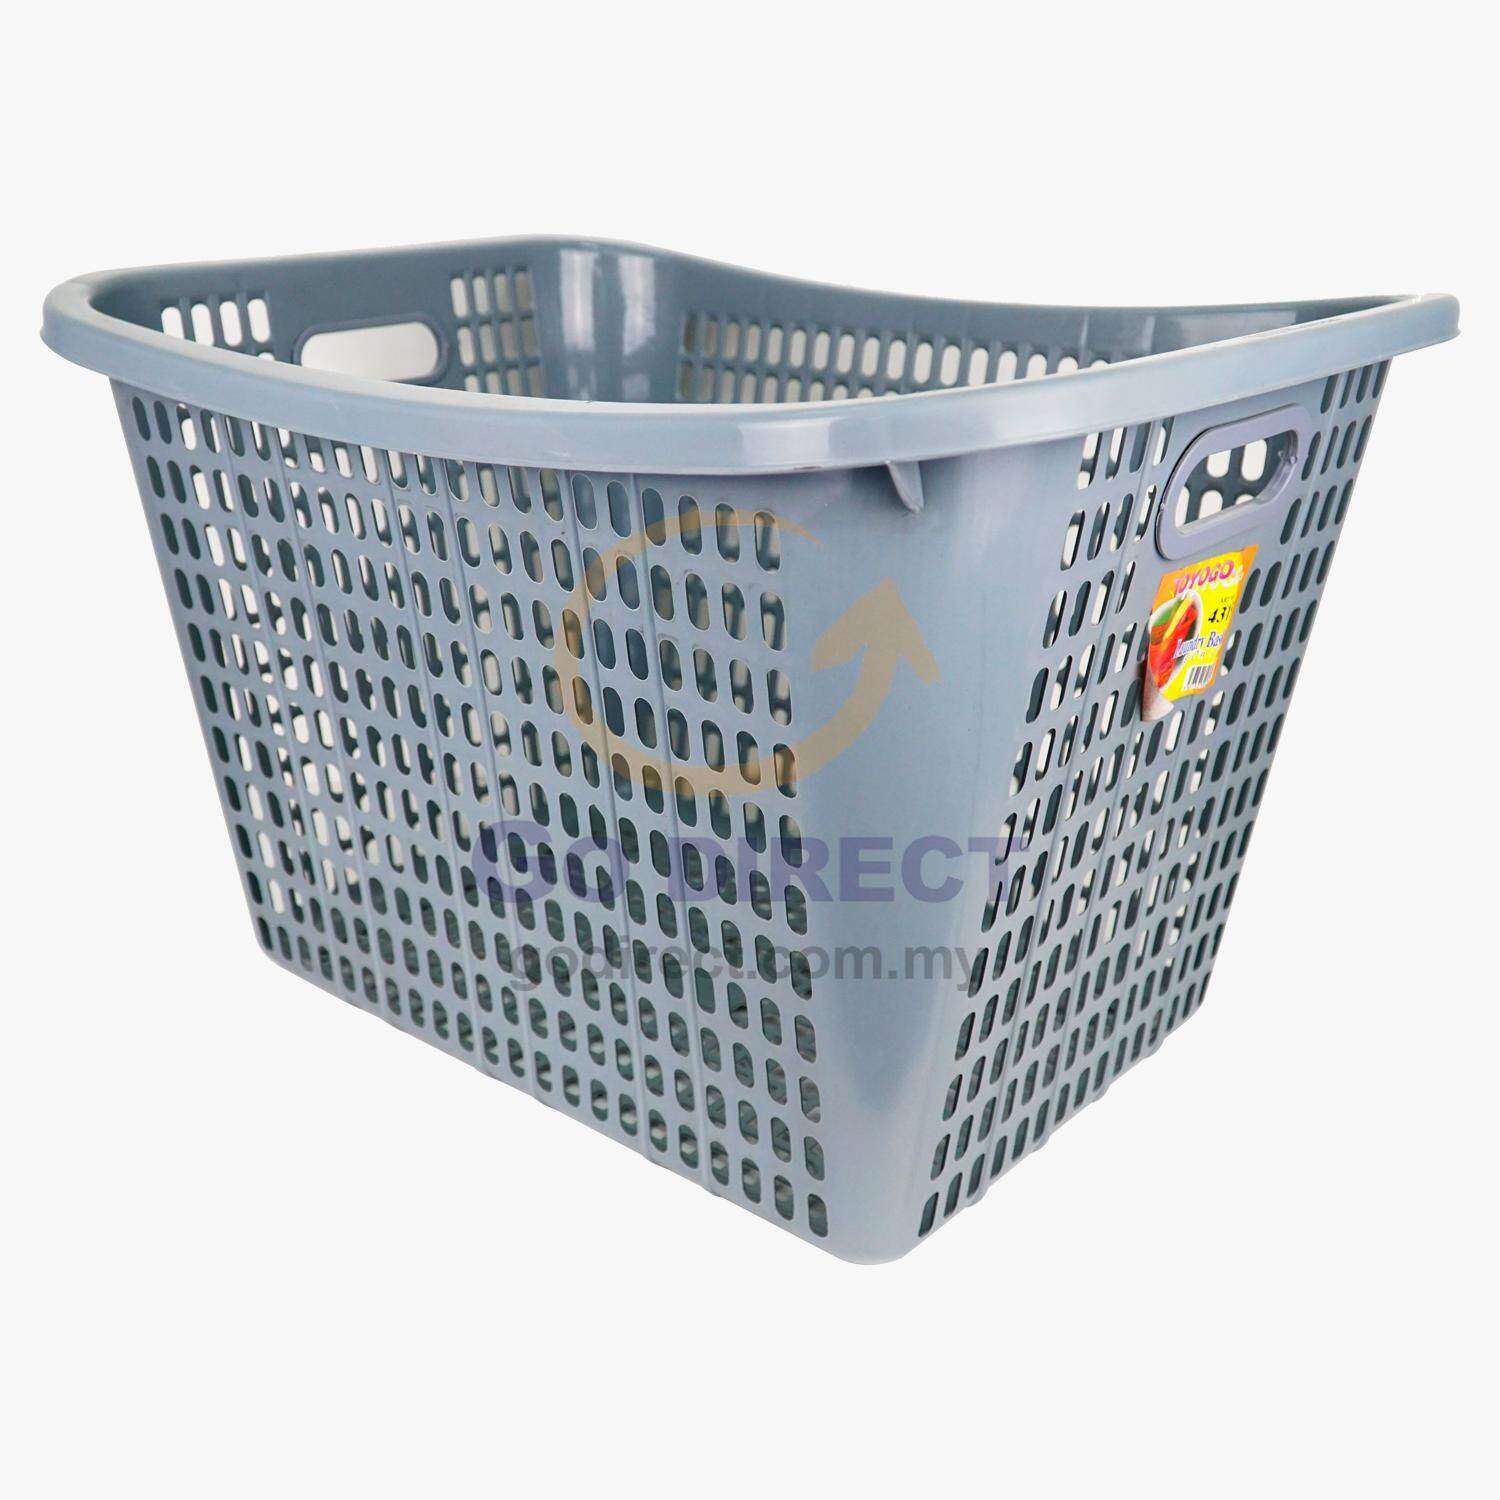 Home Laundry Baskets & Hampers - Buy Home Laundry Baskets & Hampers ...